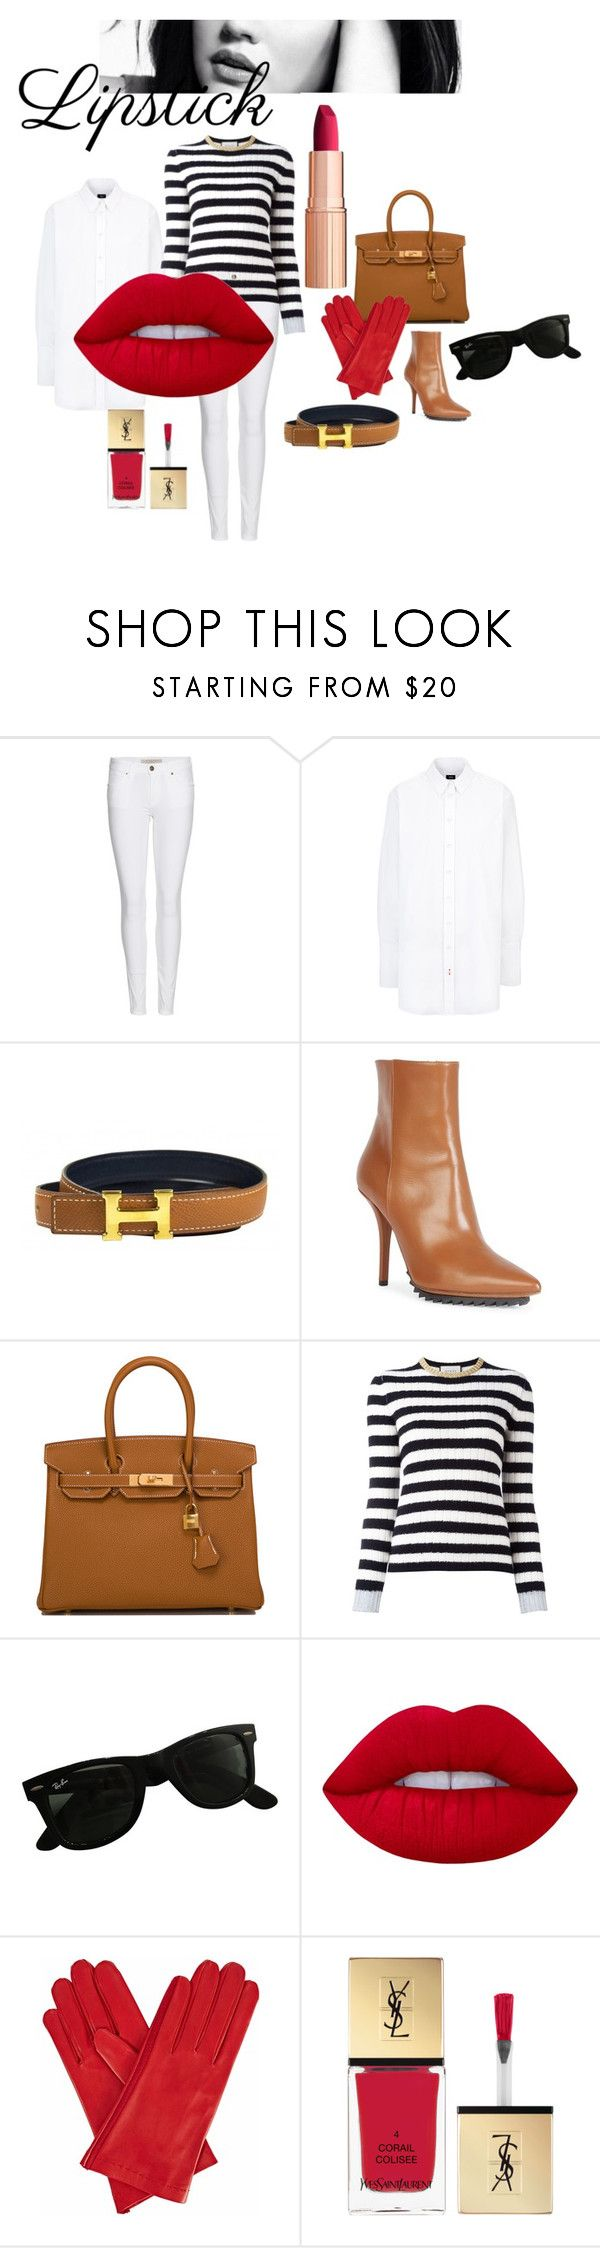 """""""woman in red...lipstick"""" by slavulienka on Polyvore featuring beauty, Burberry, Hermès, Givenchy, Gucci, Ray-Ban, Lime Crime, Gizelle Renee and Yves Saint Laurent"""